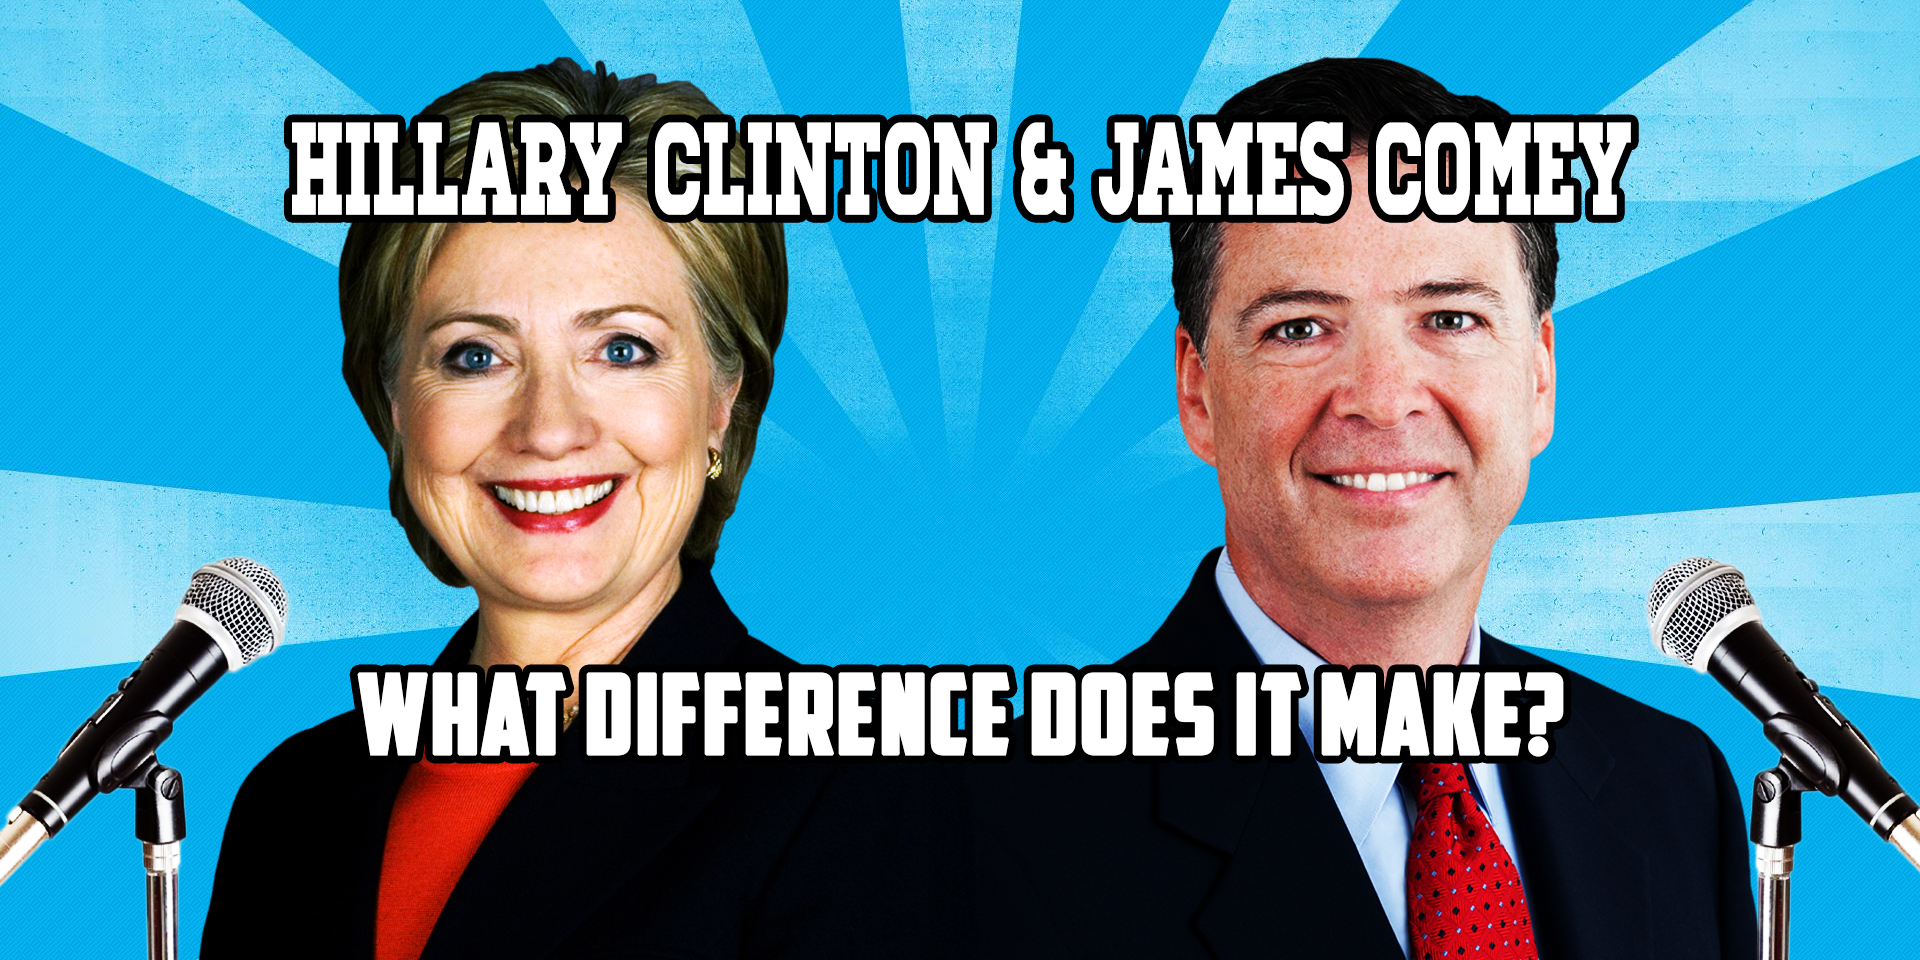 Hillary Clinton & James Comey - What Difference Does It Make